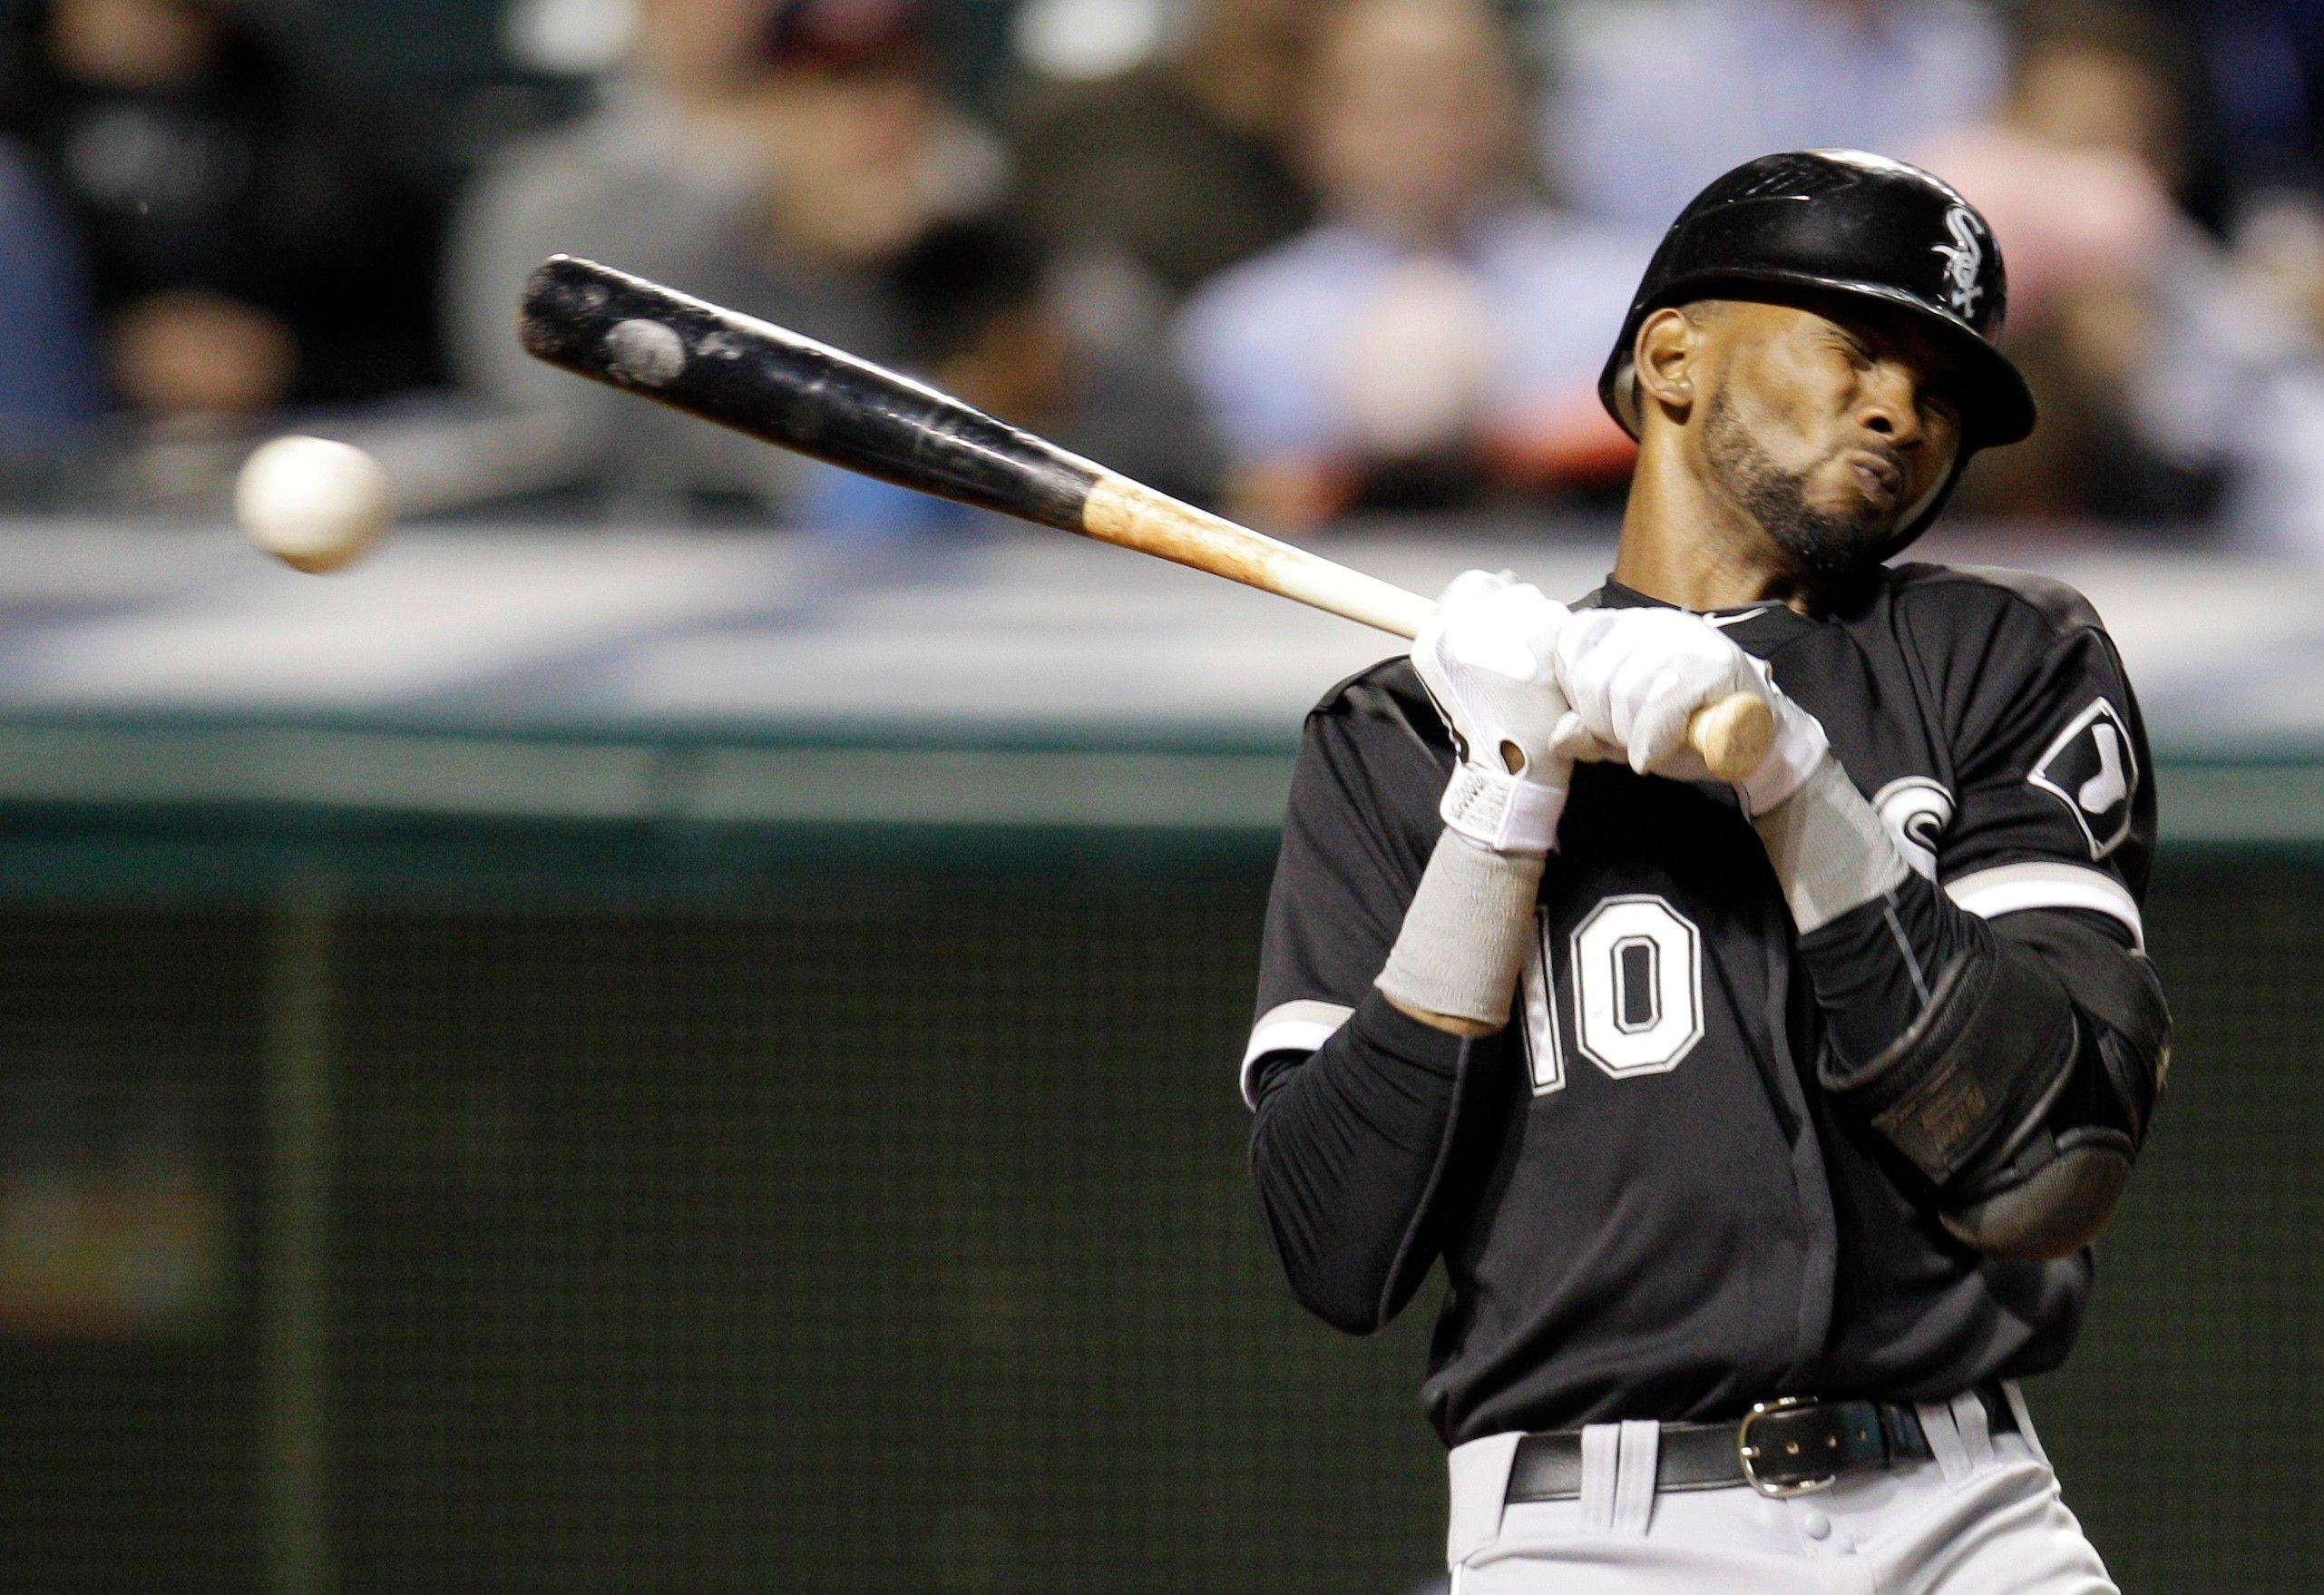 White Sox shortstop Alexei Ramirez is hit by a pitch by Indians relief pitcher Josh Judy in the ninth inning Tuesday night. Sox batters have been hit by a pitch 82 times this season, while their pitches have only hit opposing batters 41 times.